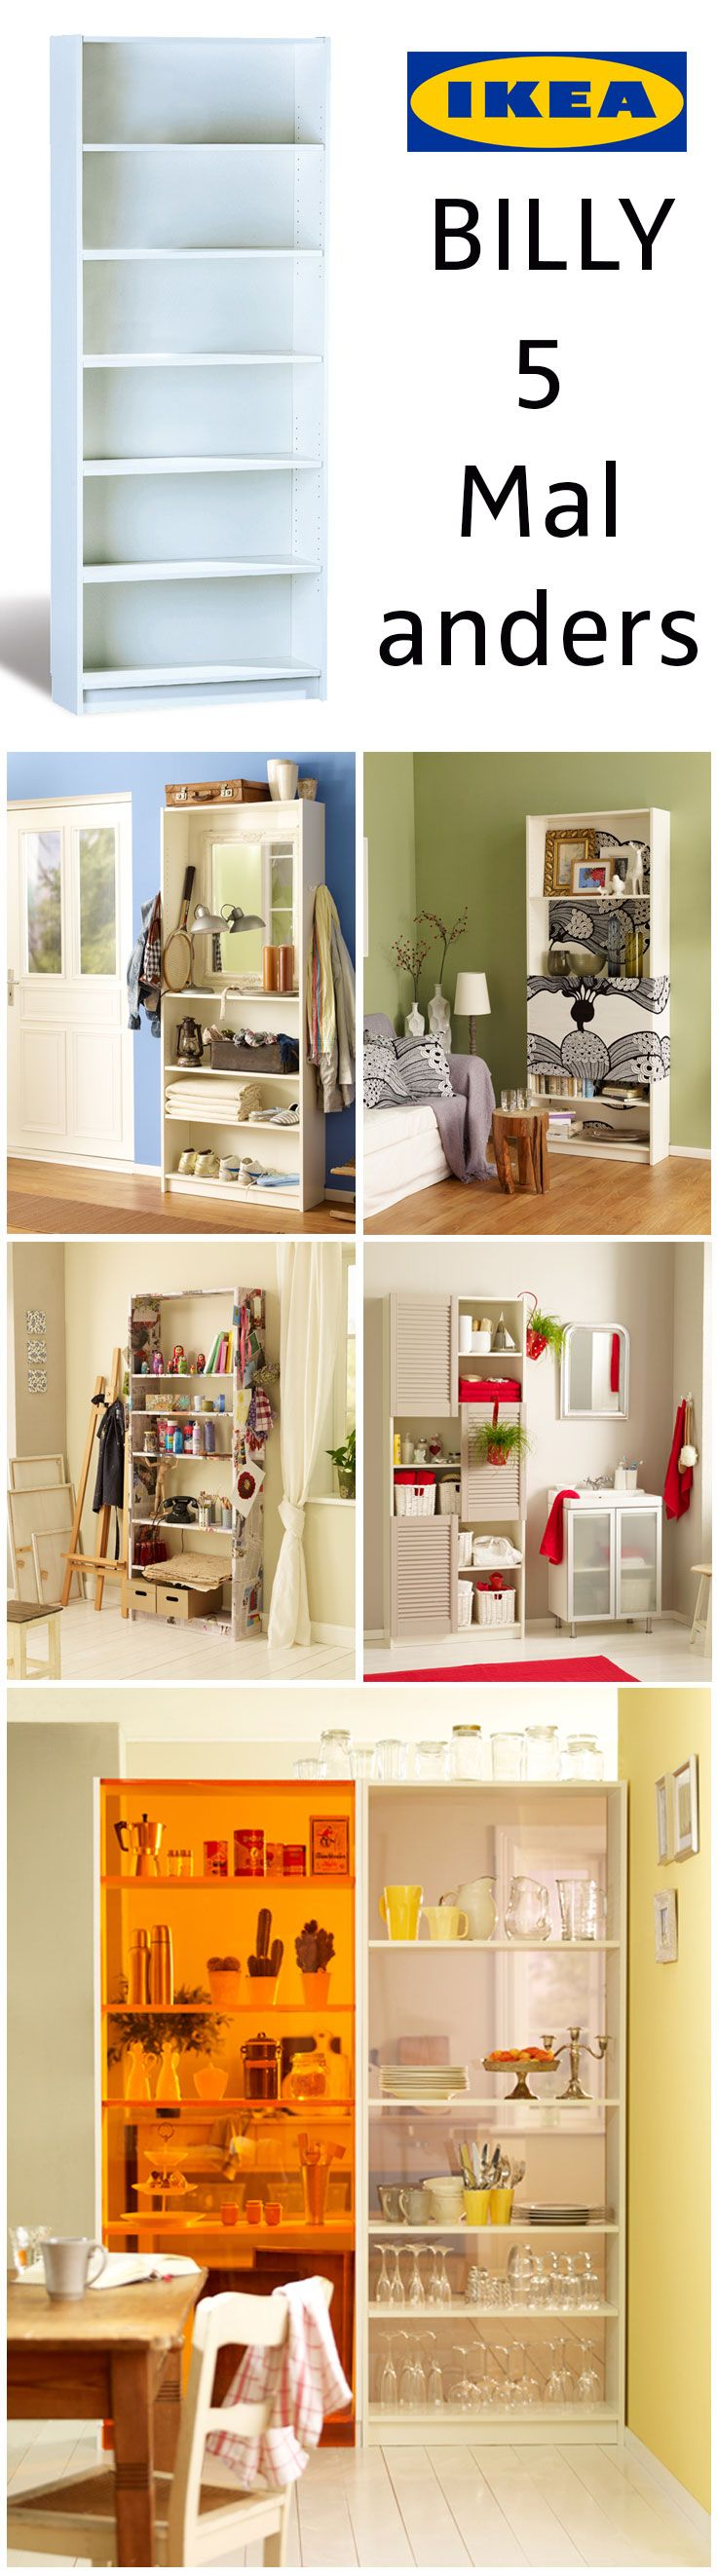 57 best regale schr nke images on pinterest closets woodworking and bookcase closet. Black Bedroom Furniture Sets. Home Design Ideas